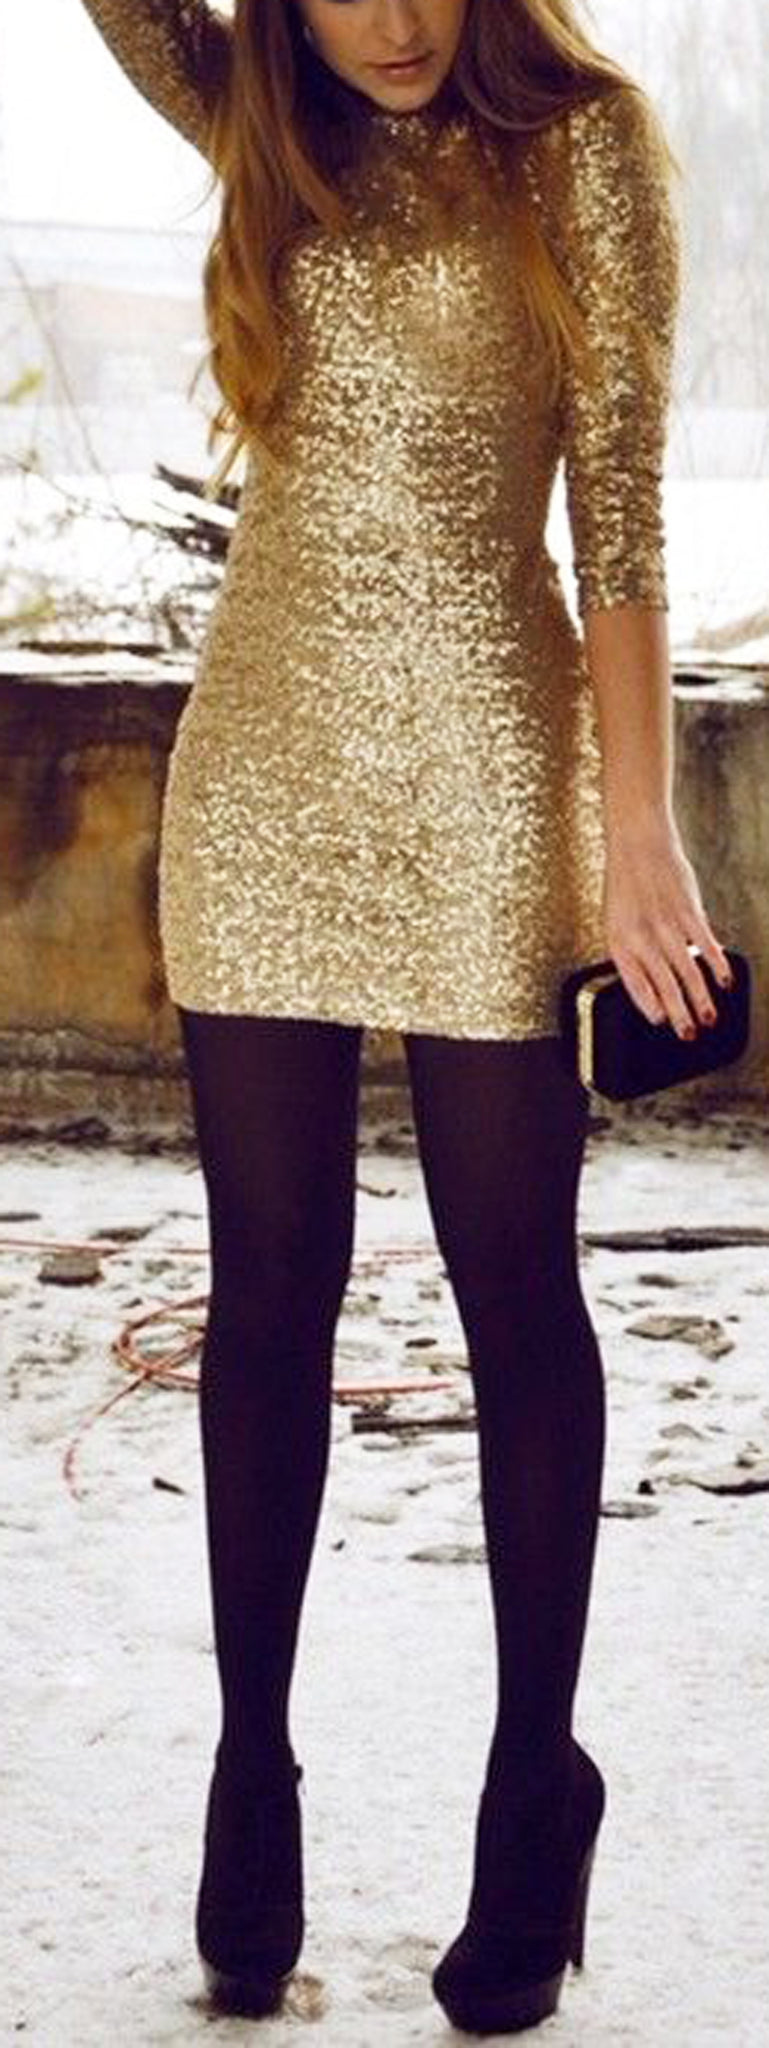 New Years Party Outfit Gold Dress Ideas - Black Stockings - MyBodiArt.com